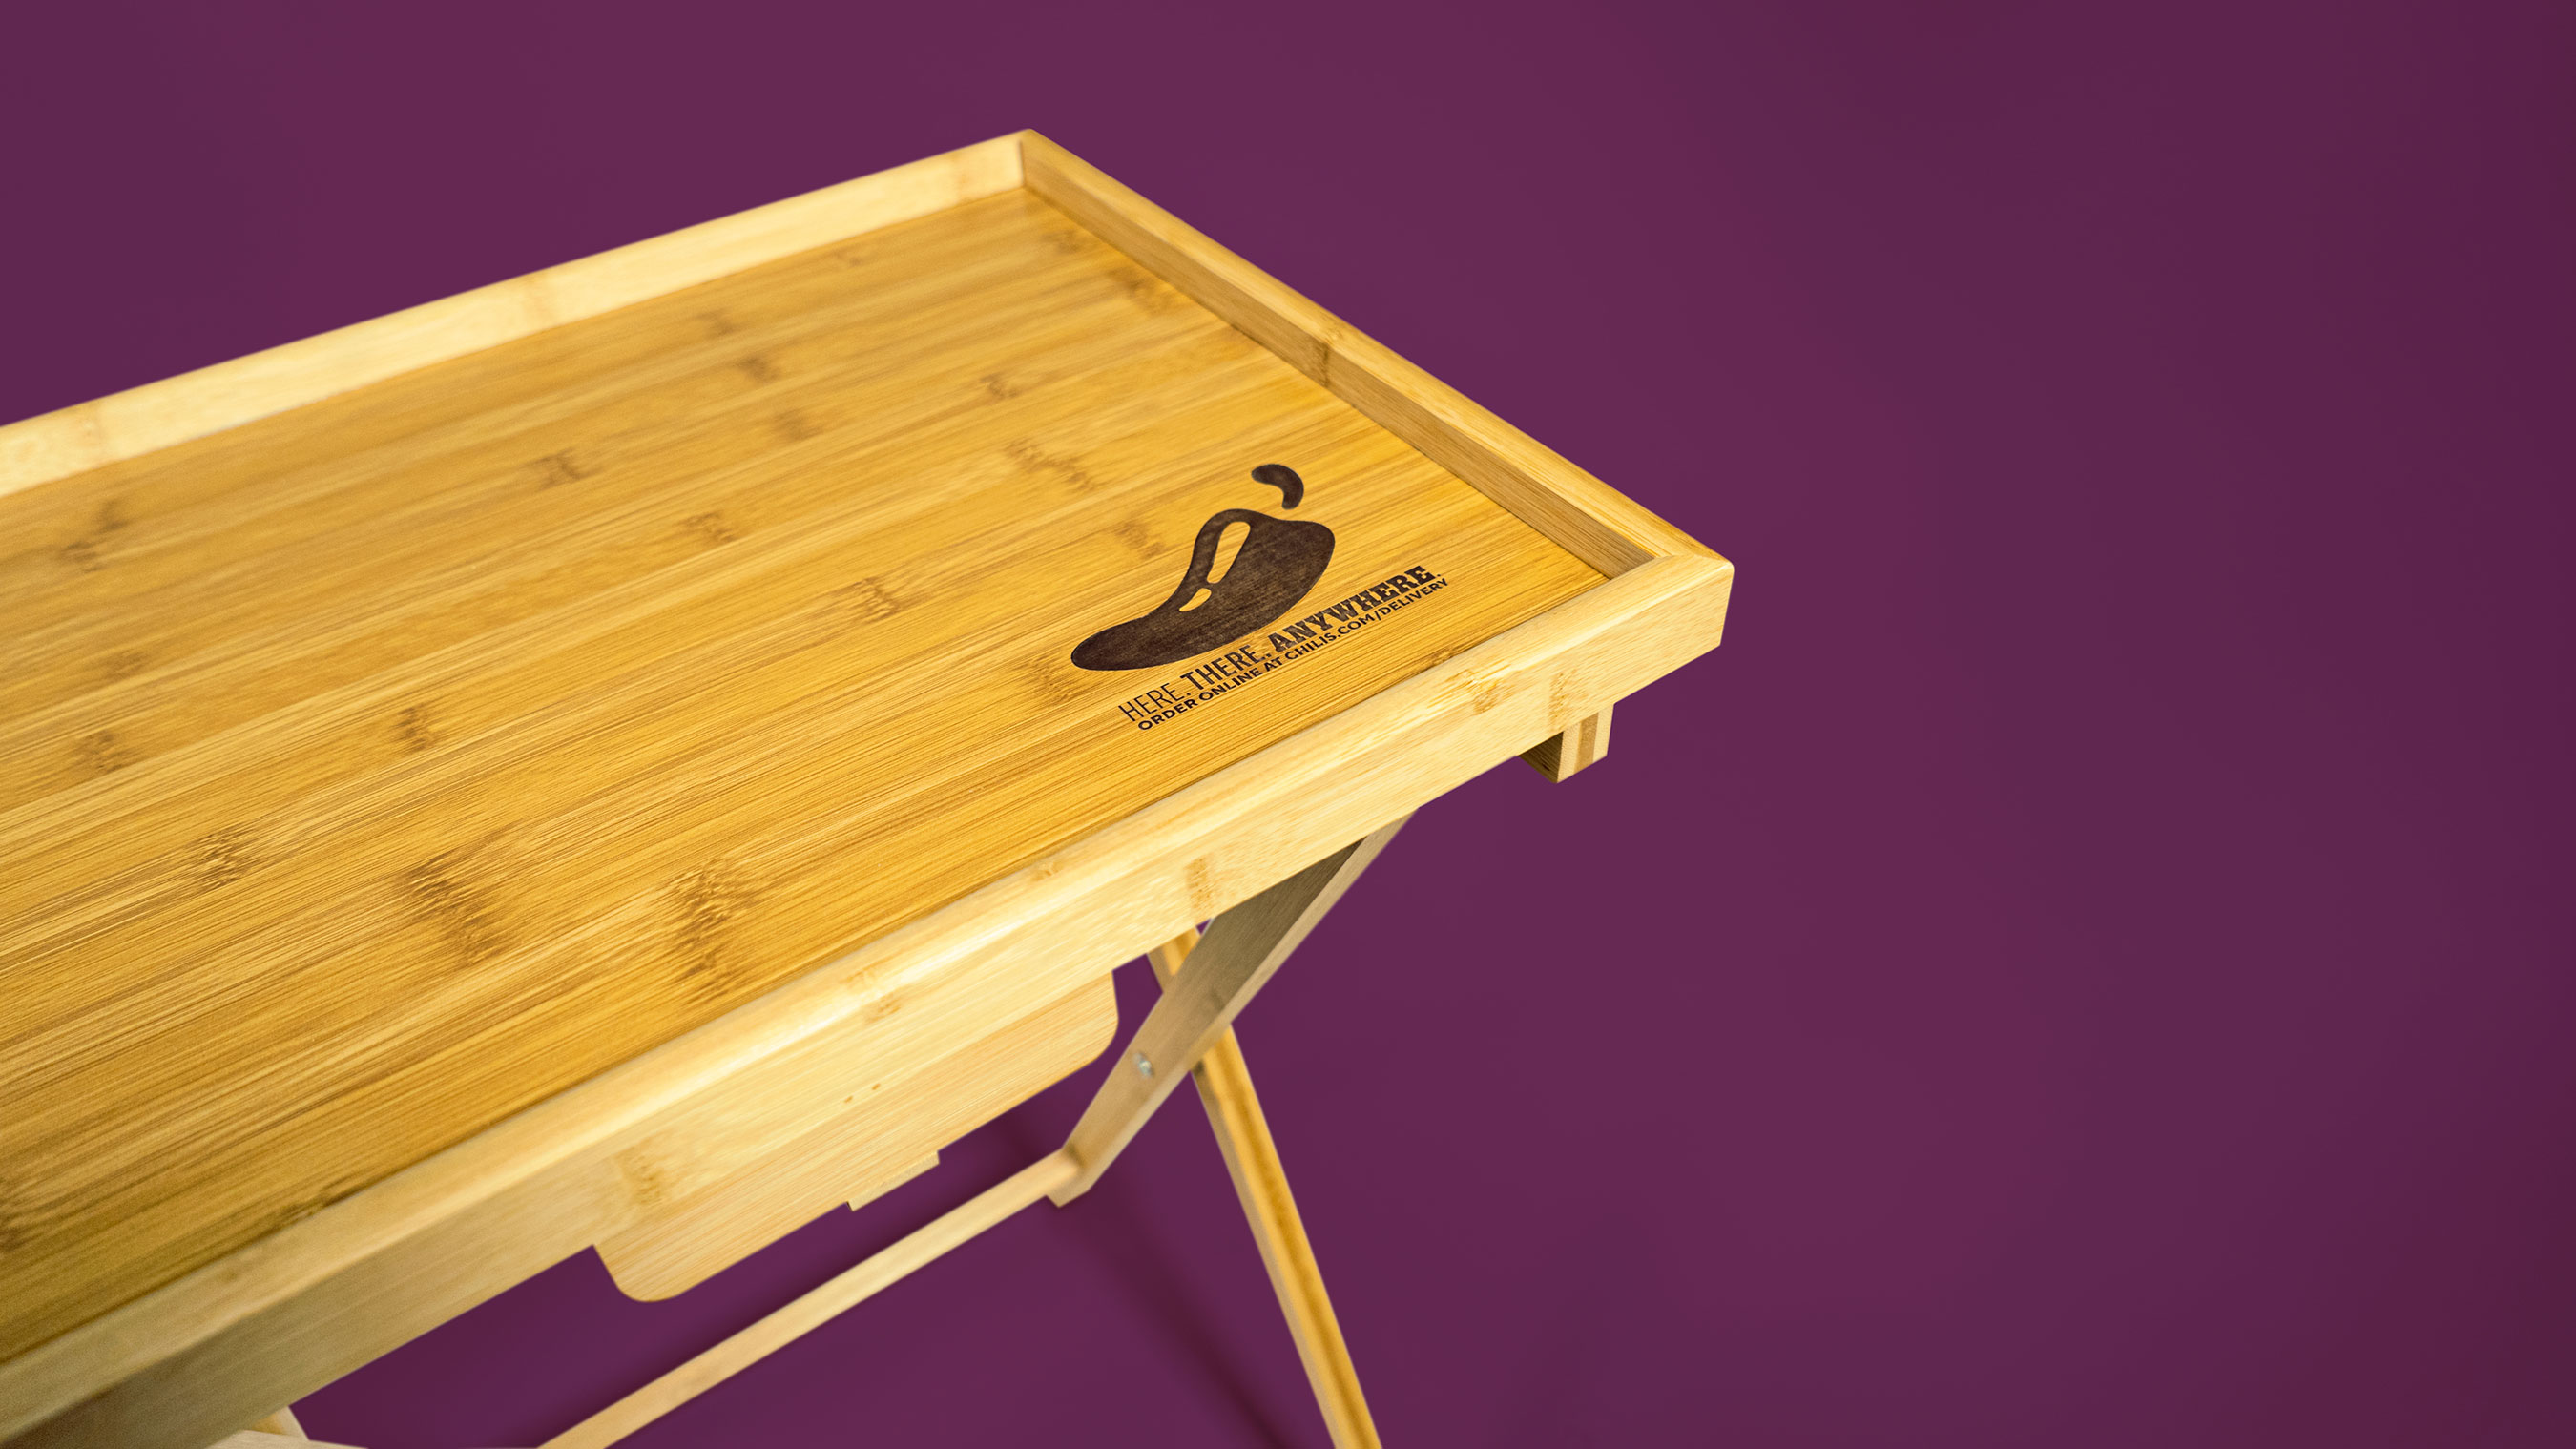 This wooden TV tray can handle just about anything so you don't have to hold it all in your lap!